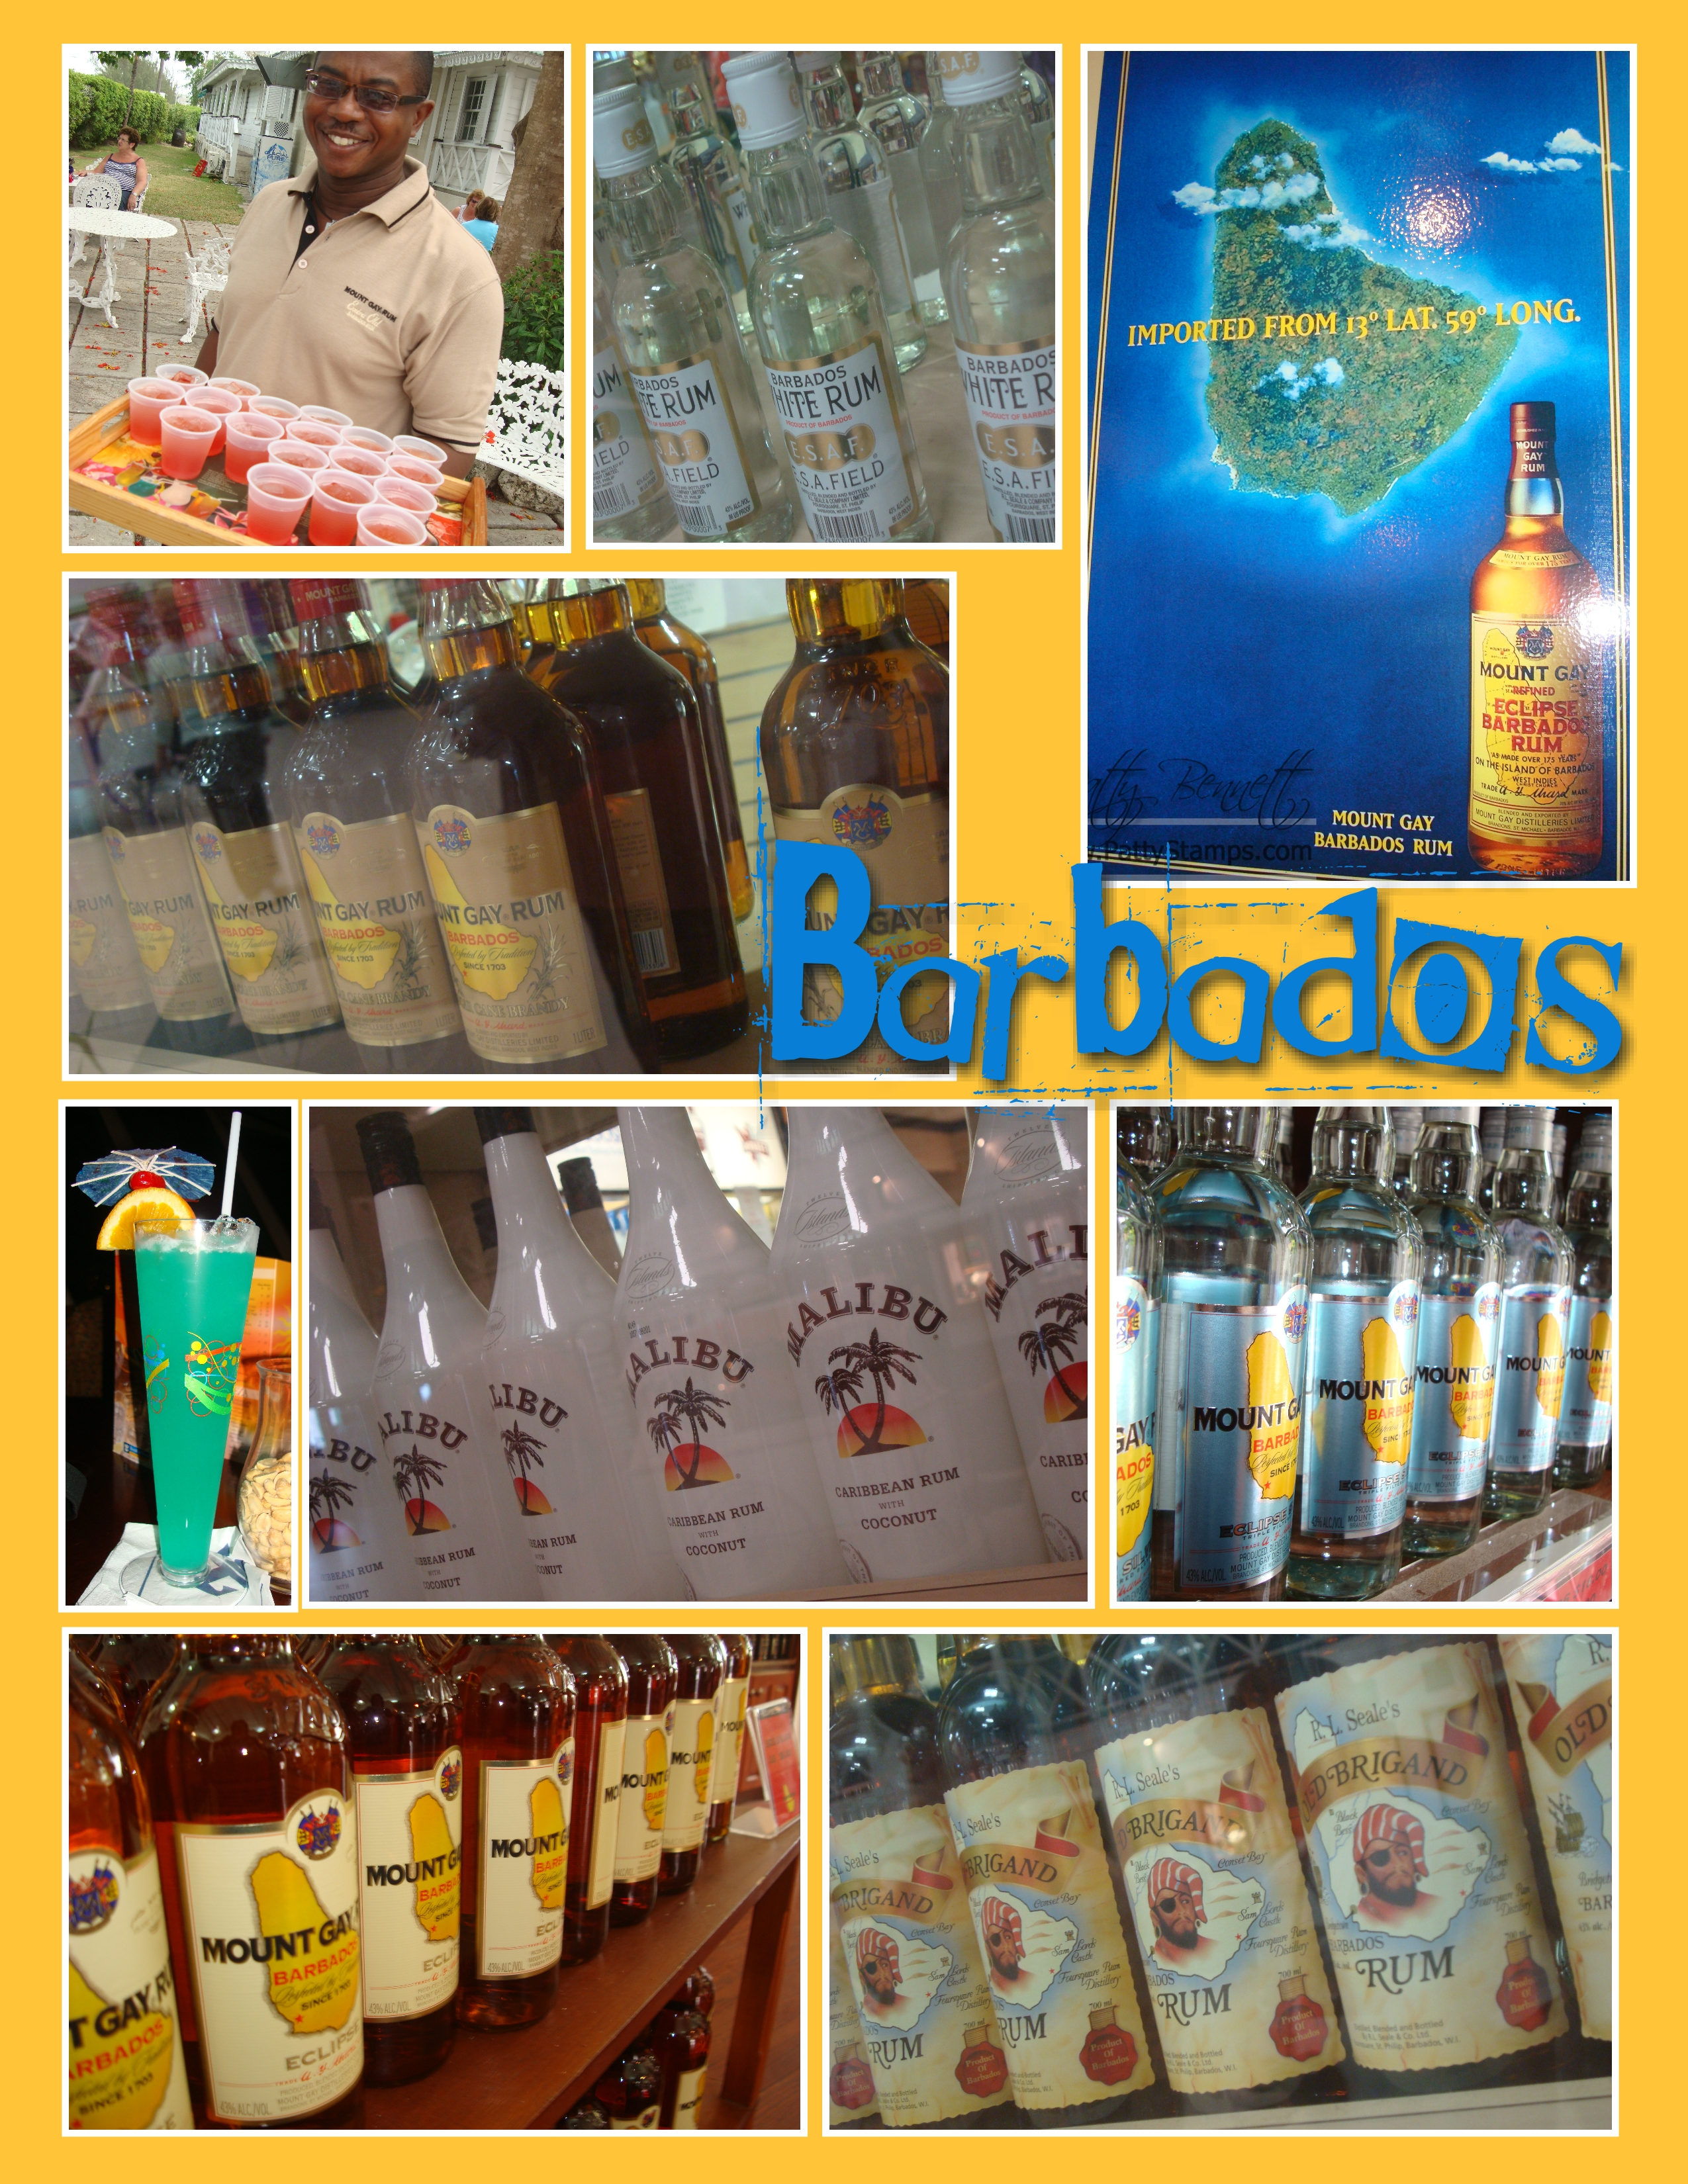 Mt gay rum collage-001